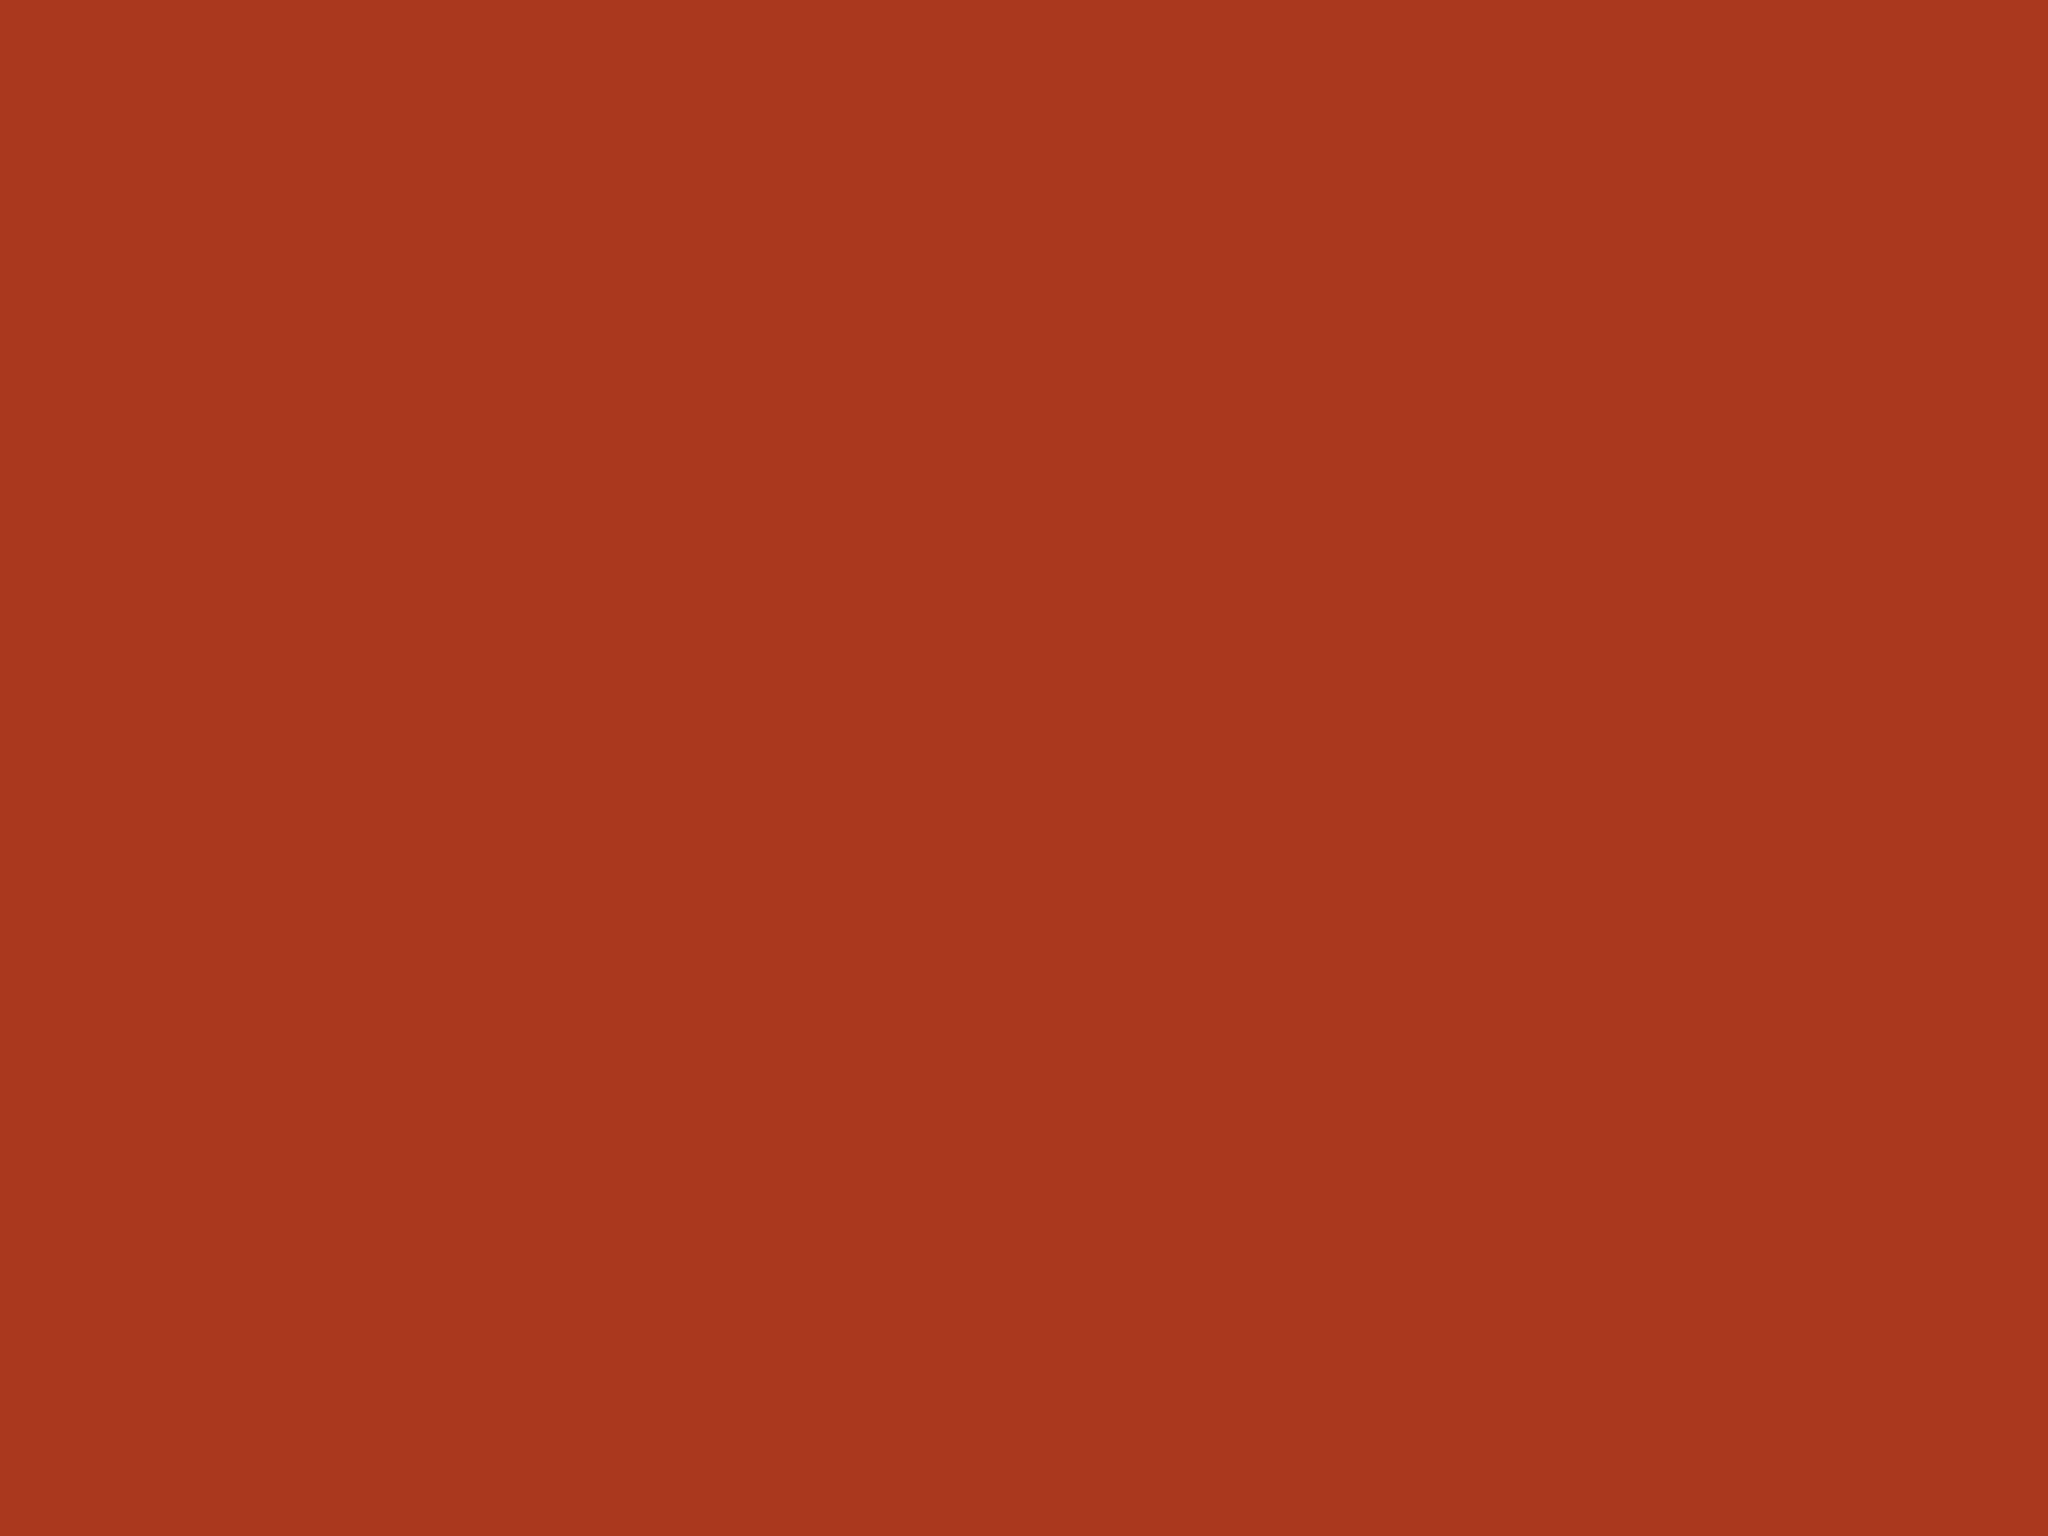 2048x1536 Chinese Red Solid Color Background